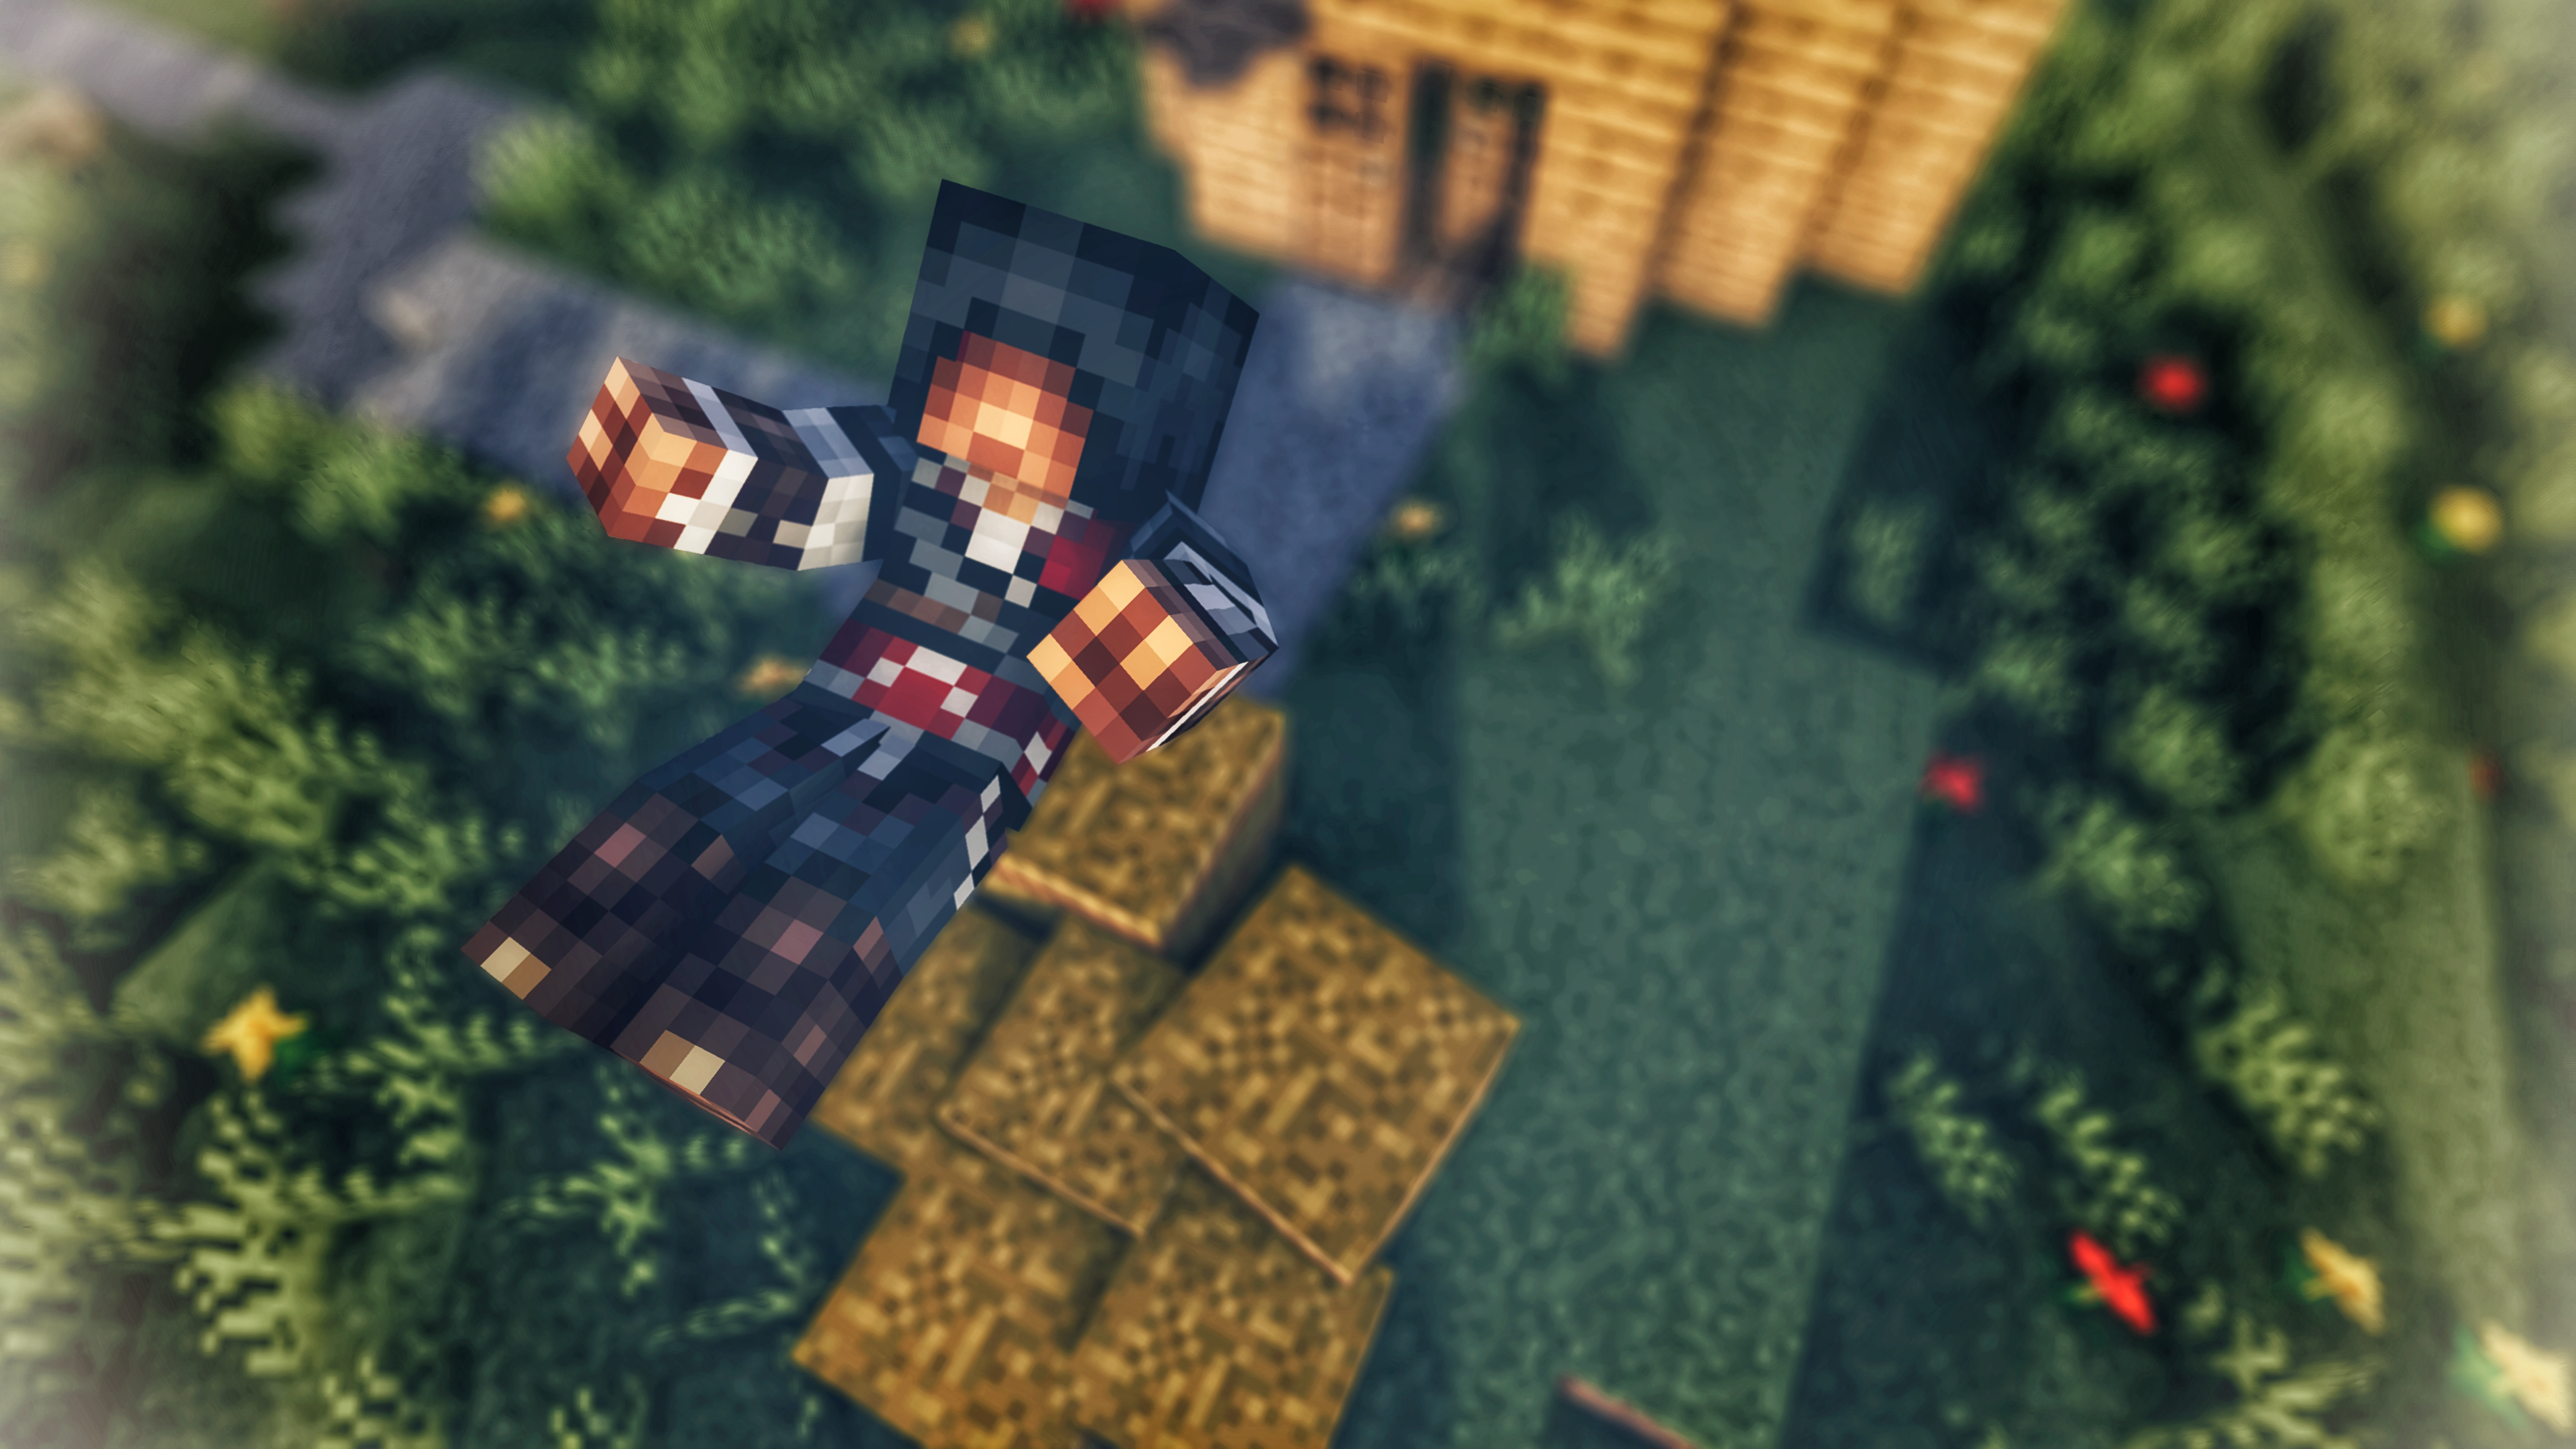 Assassins In Minecraft 4k Ultra Fond Décran Hd Arrière